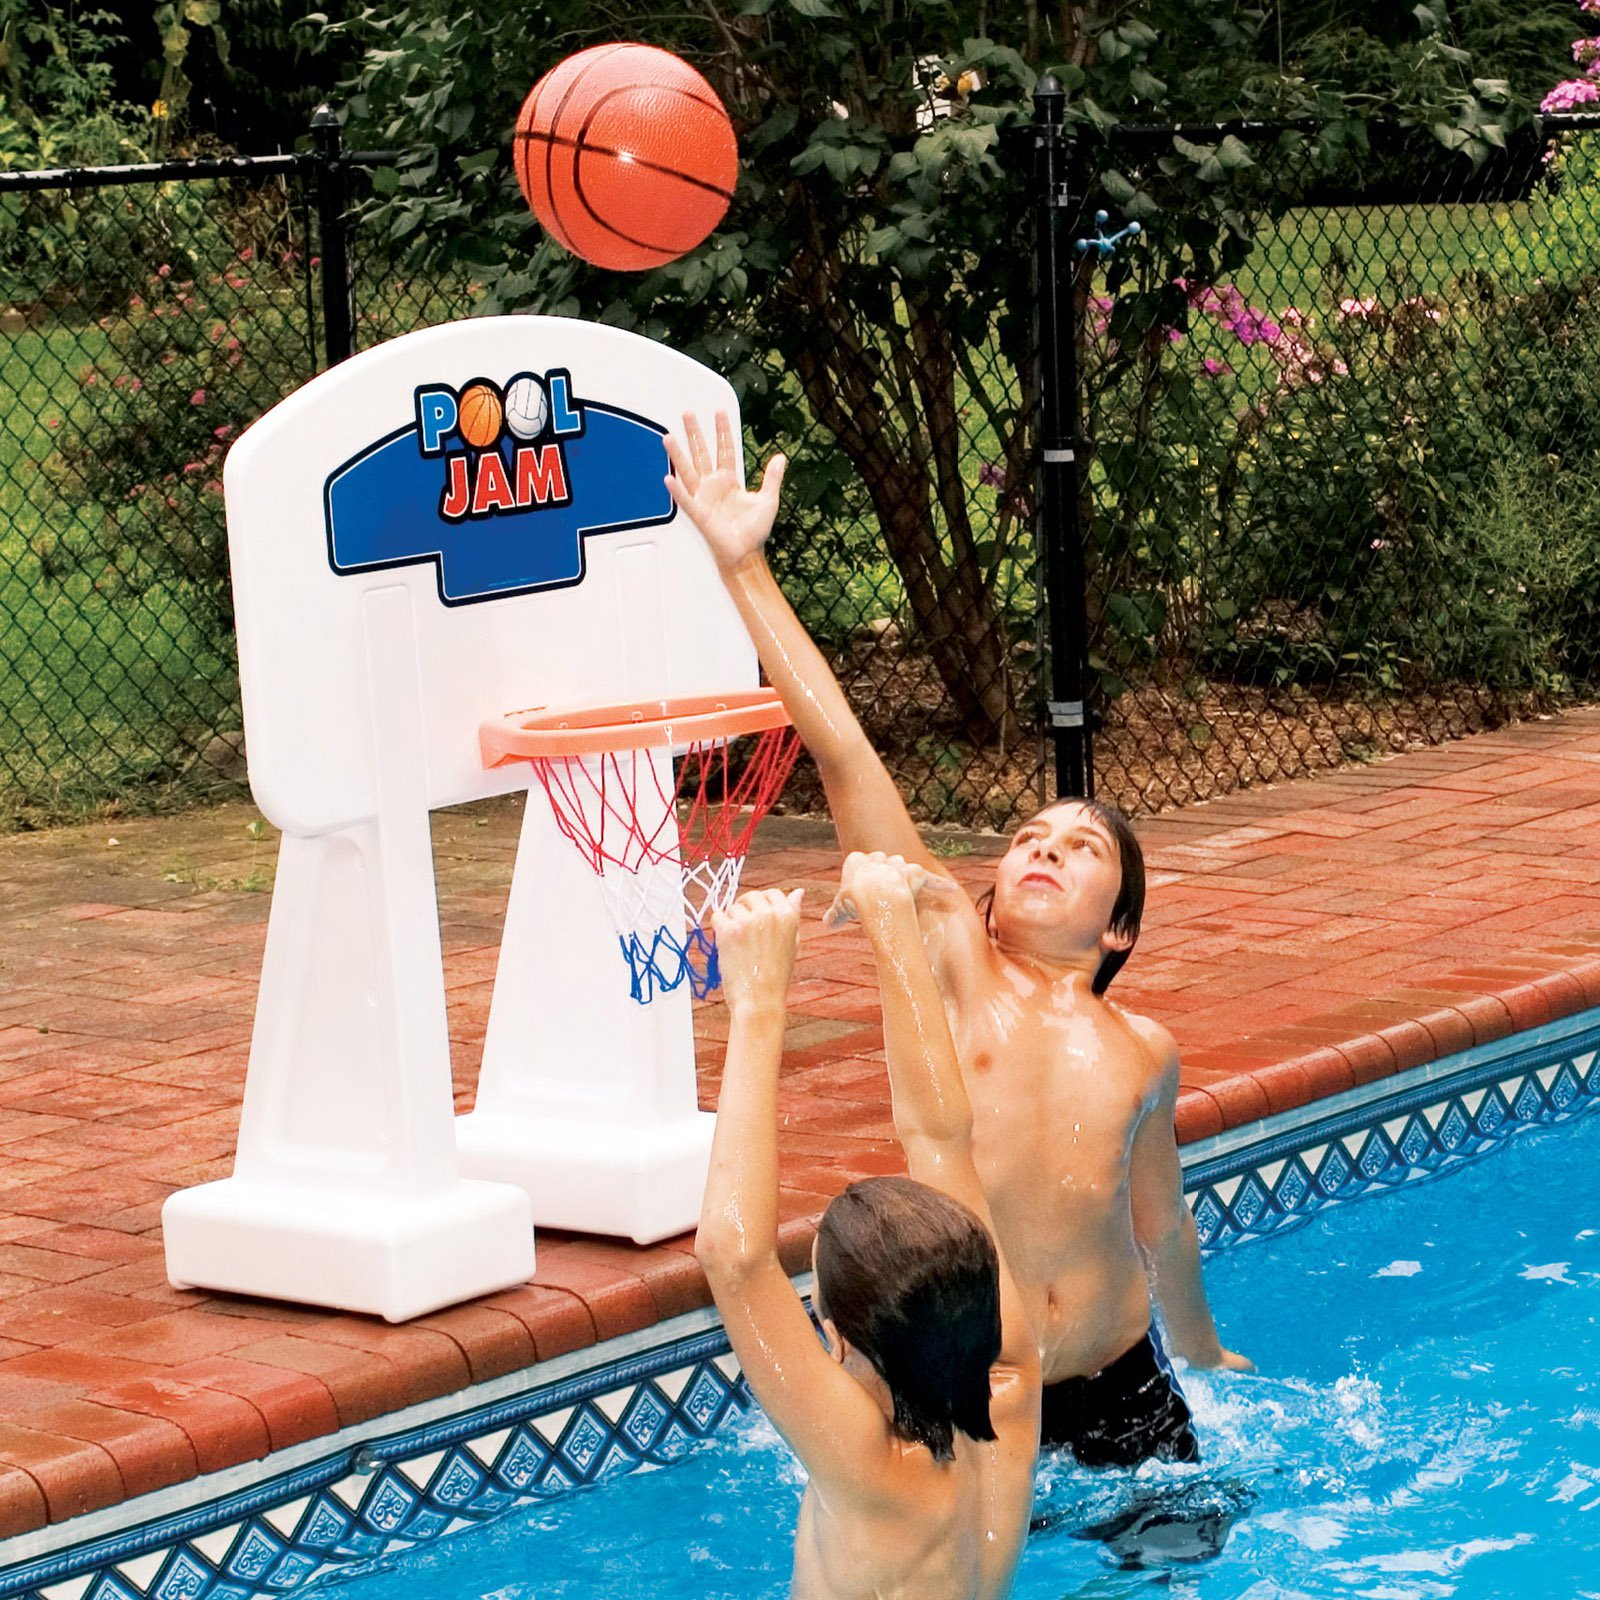 Pool Jam Basketball Game For In-Ground Pools by INTERNATIONAL LEISURE PRODUCTS